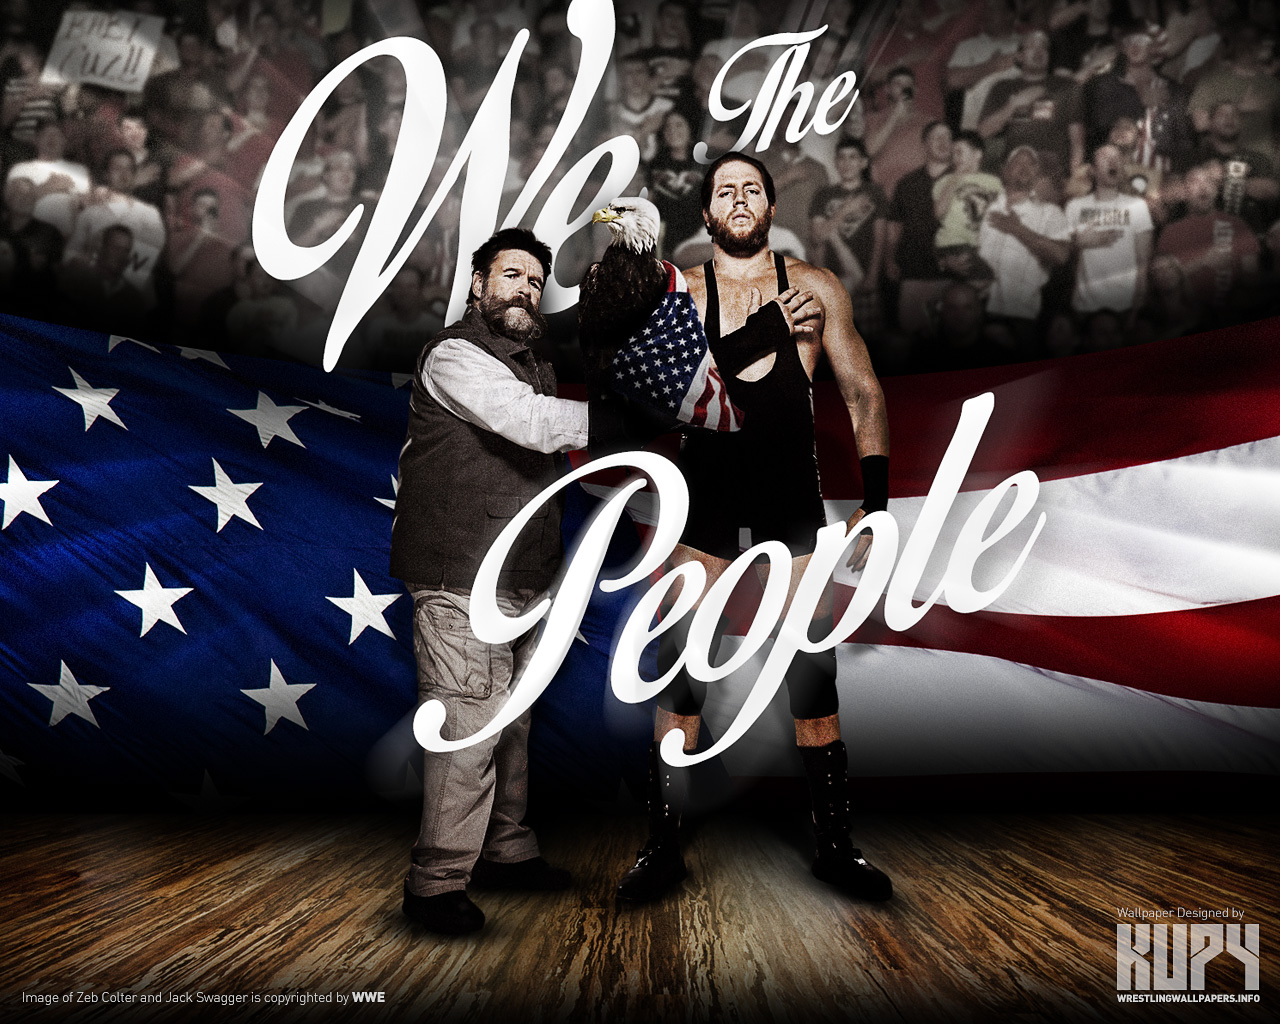 wwe images jack swagger and zeb colter we the people